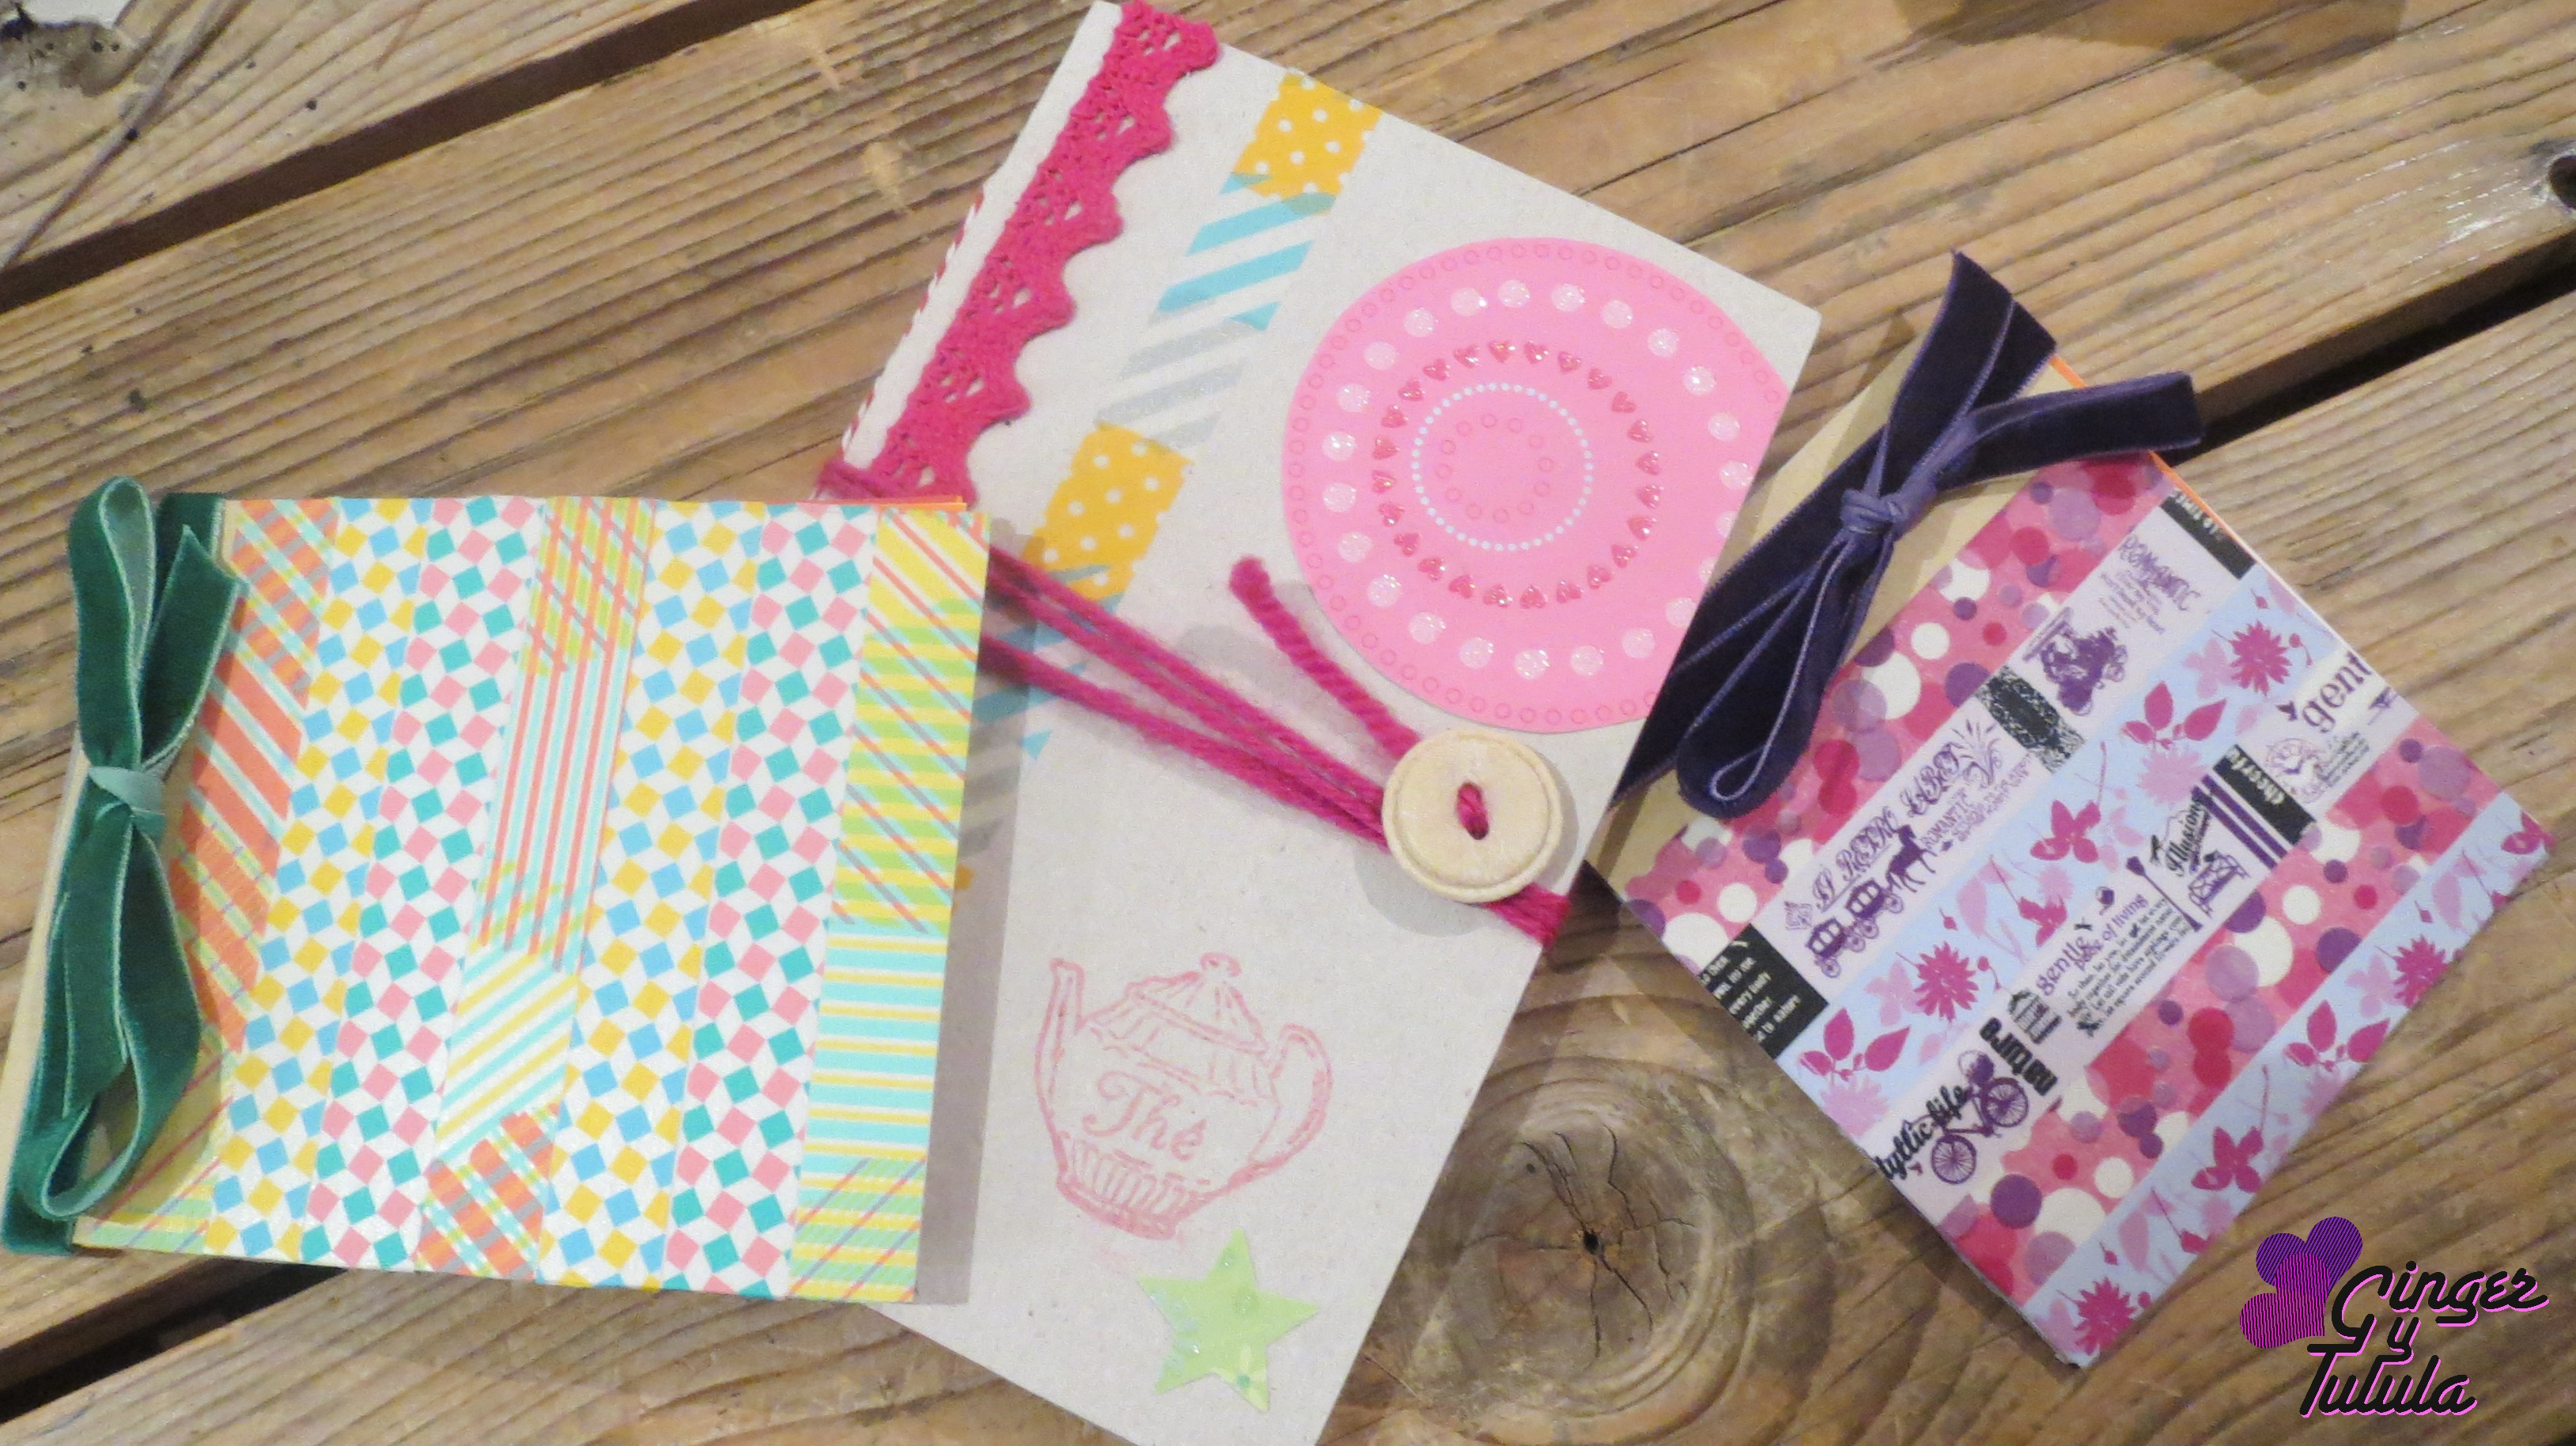 libretas_washi_tape_ginger_y_tulula